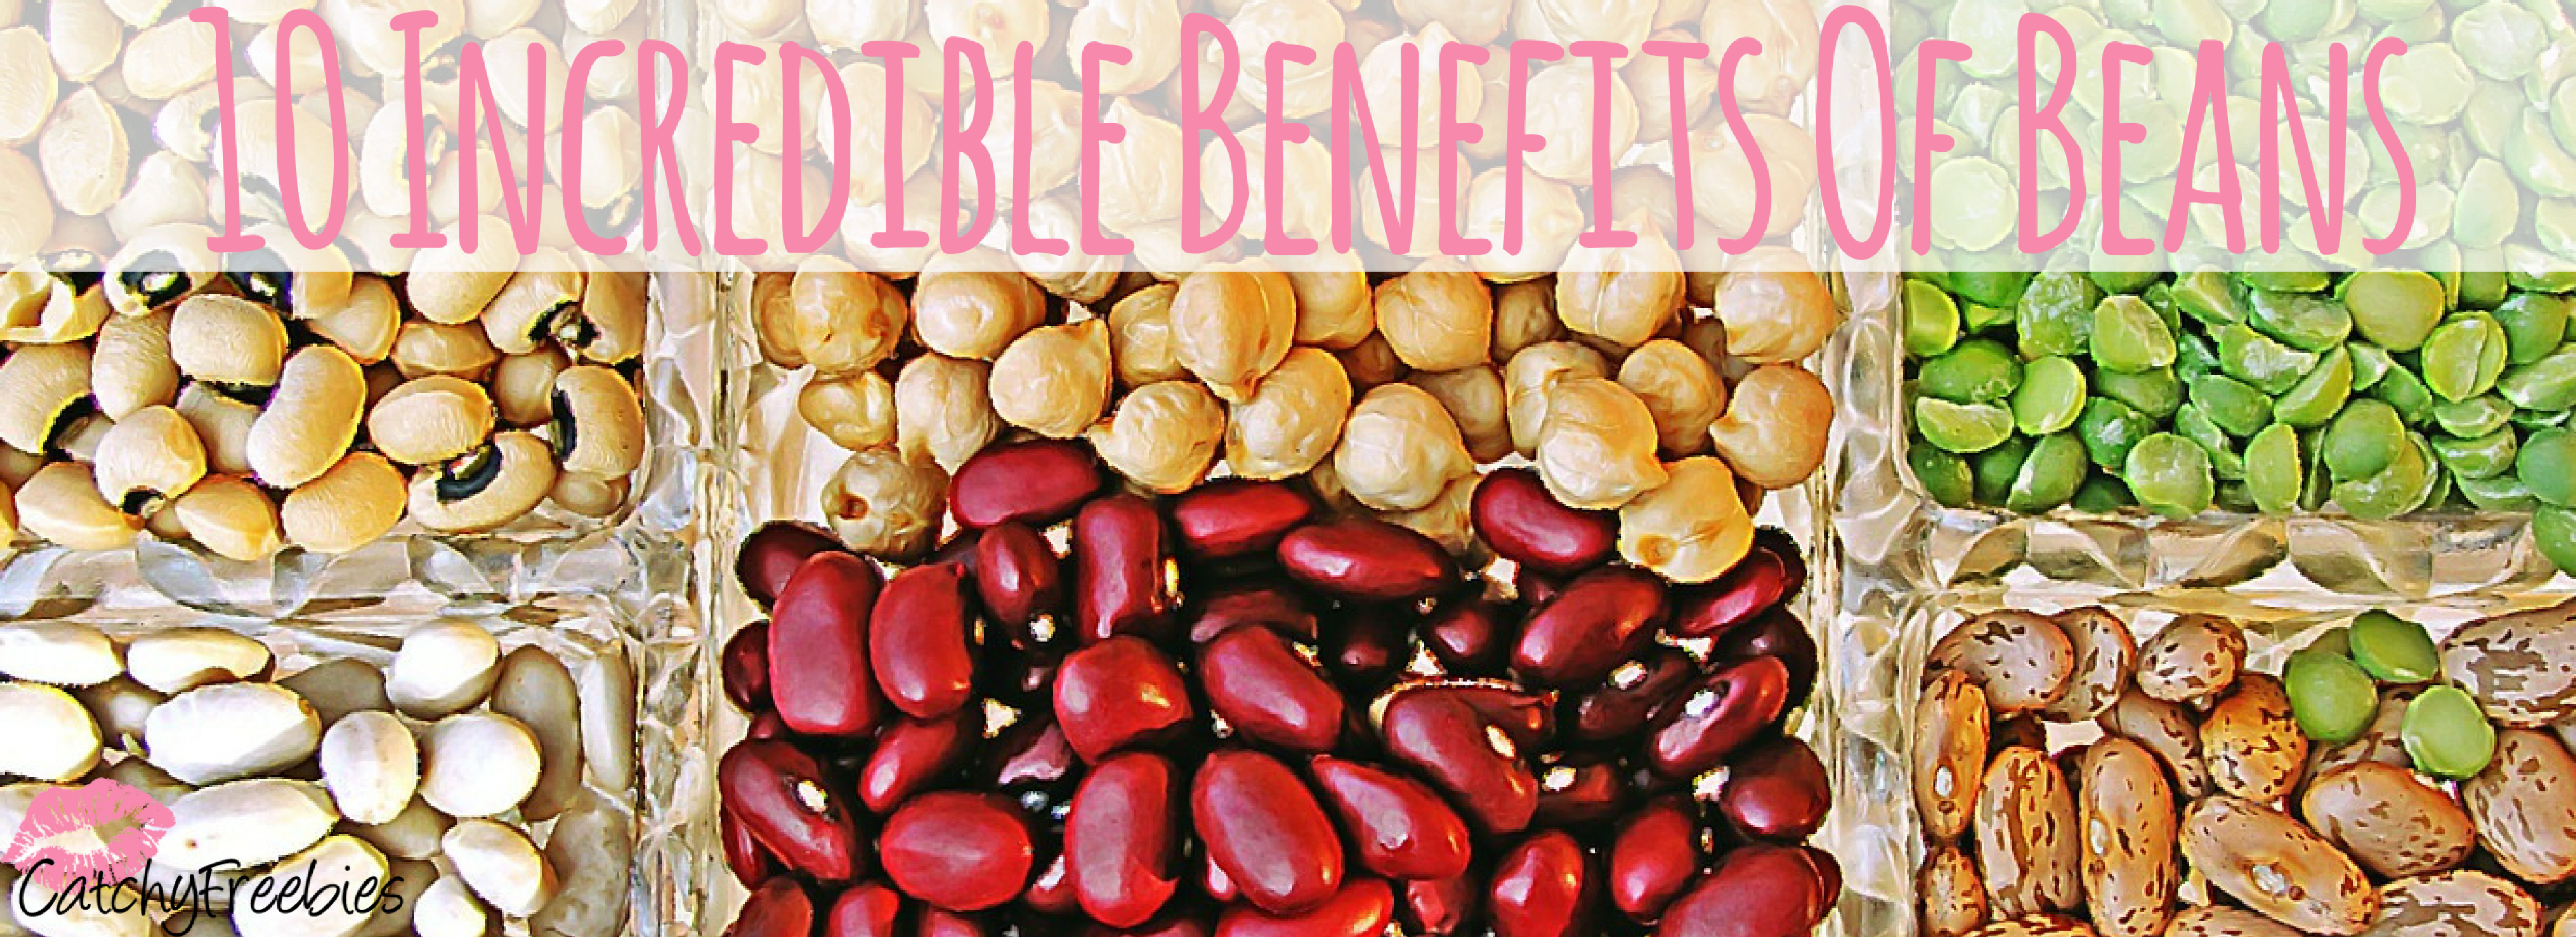 Incredible Benefits Of Beans